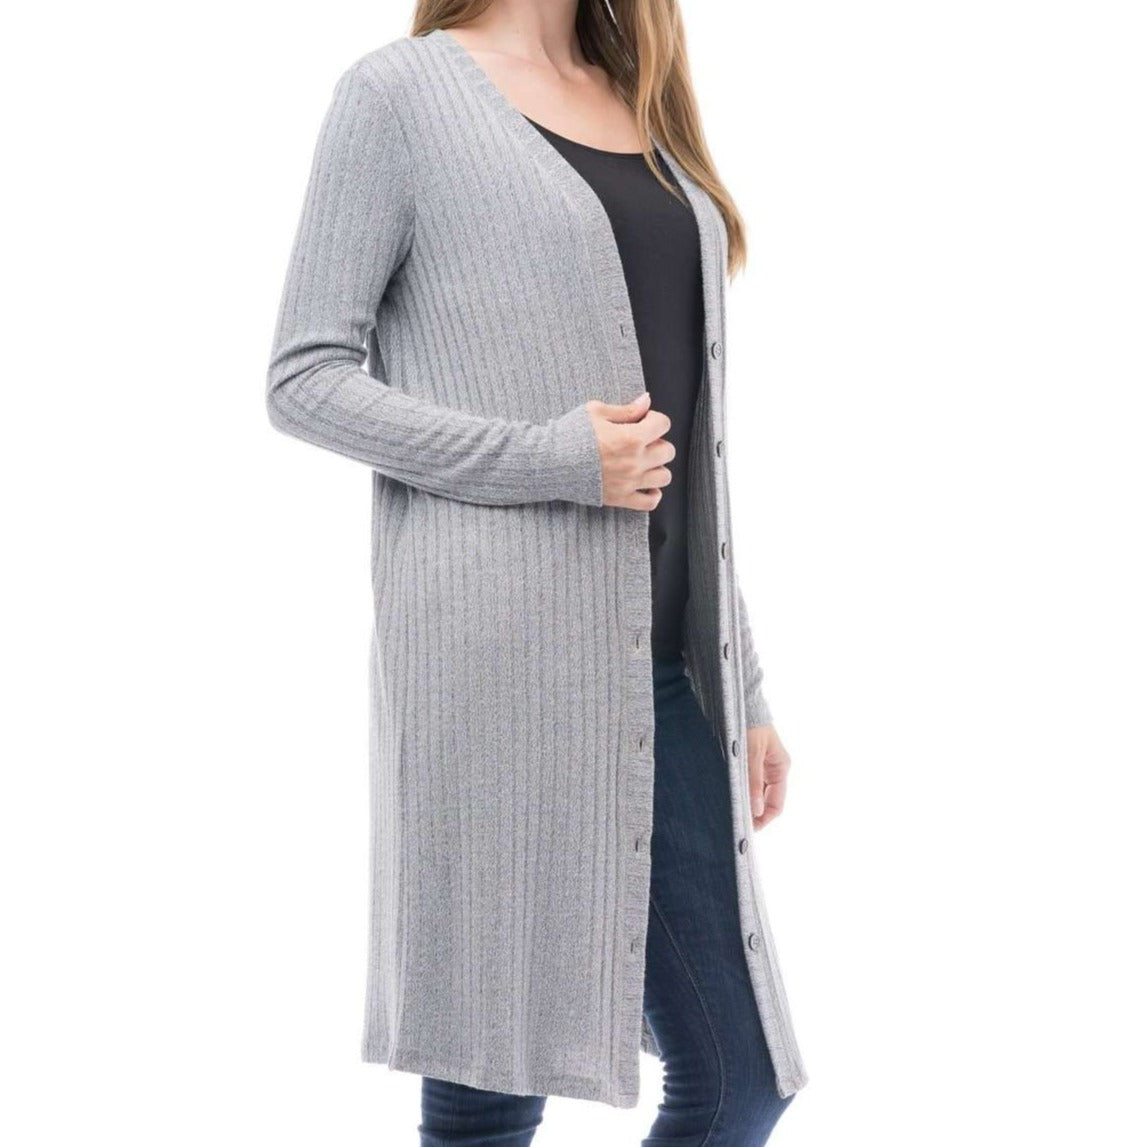 8.28 Boutique:Blues and Greys,Blues and Greys Dark Grey Cardigan,Sweaters